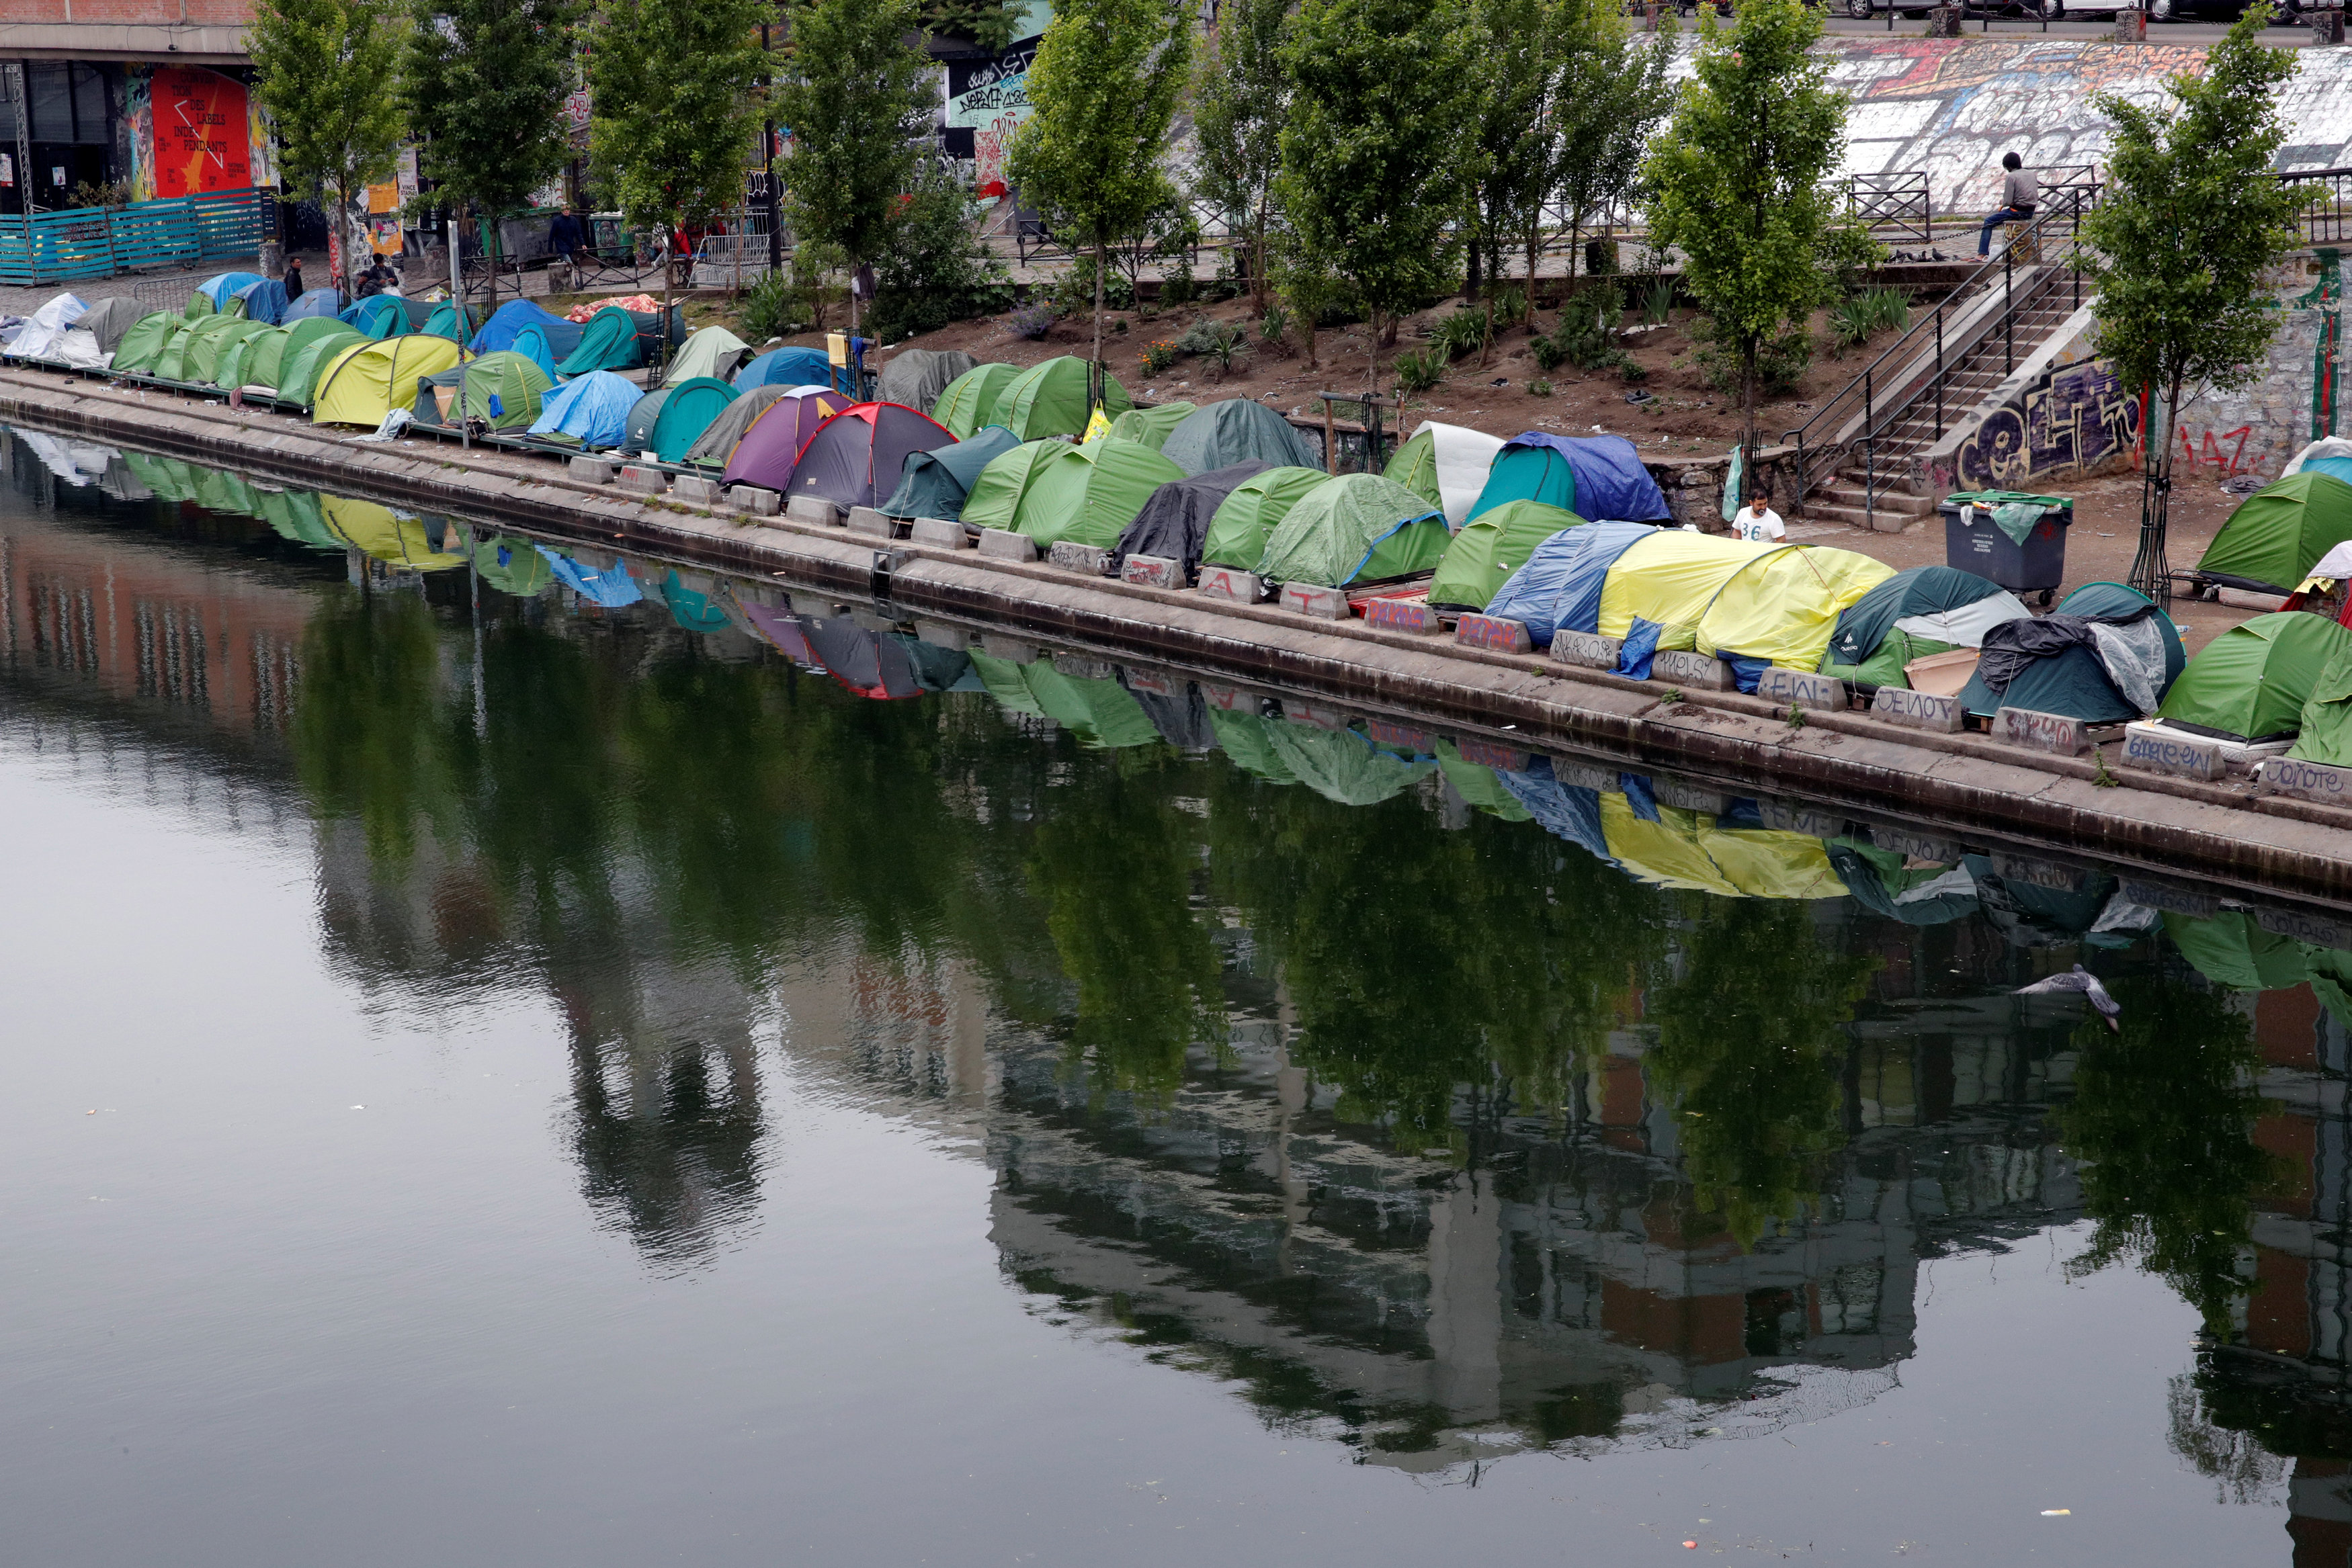 Tents where migrants live in a makeshift camp are seen on the Quai de Valmy of the canal Saint-Martin in Paris, France, May 15, 2018. Picture taken May 15, 2018. REUTERS/Philippe Wojazer